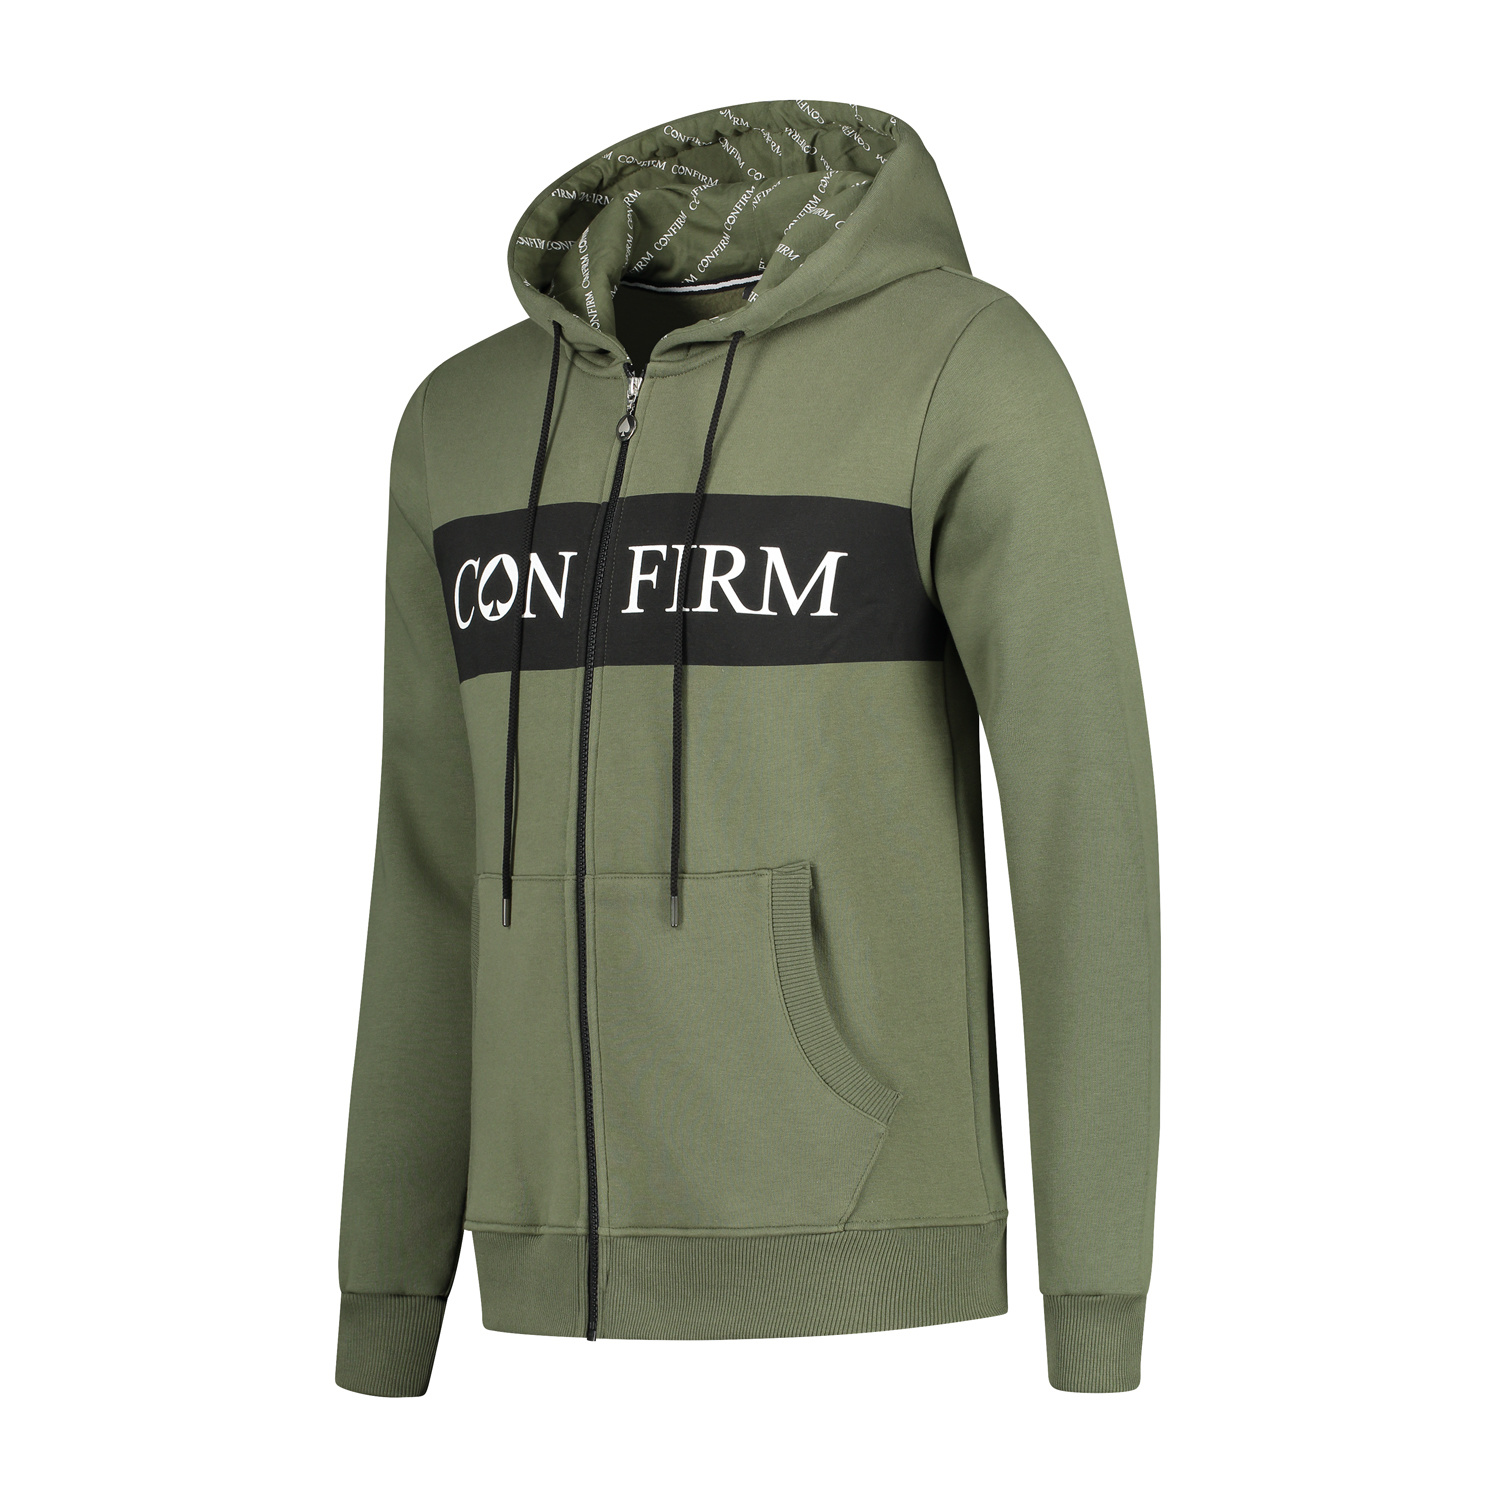 Confirm Brand Hoodie Vest - Army-2